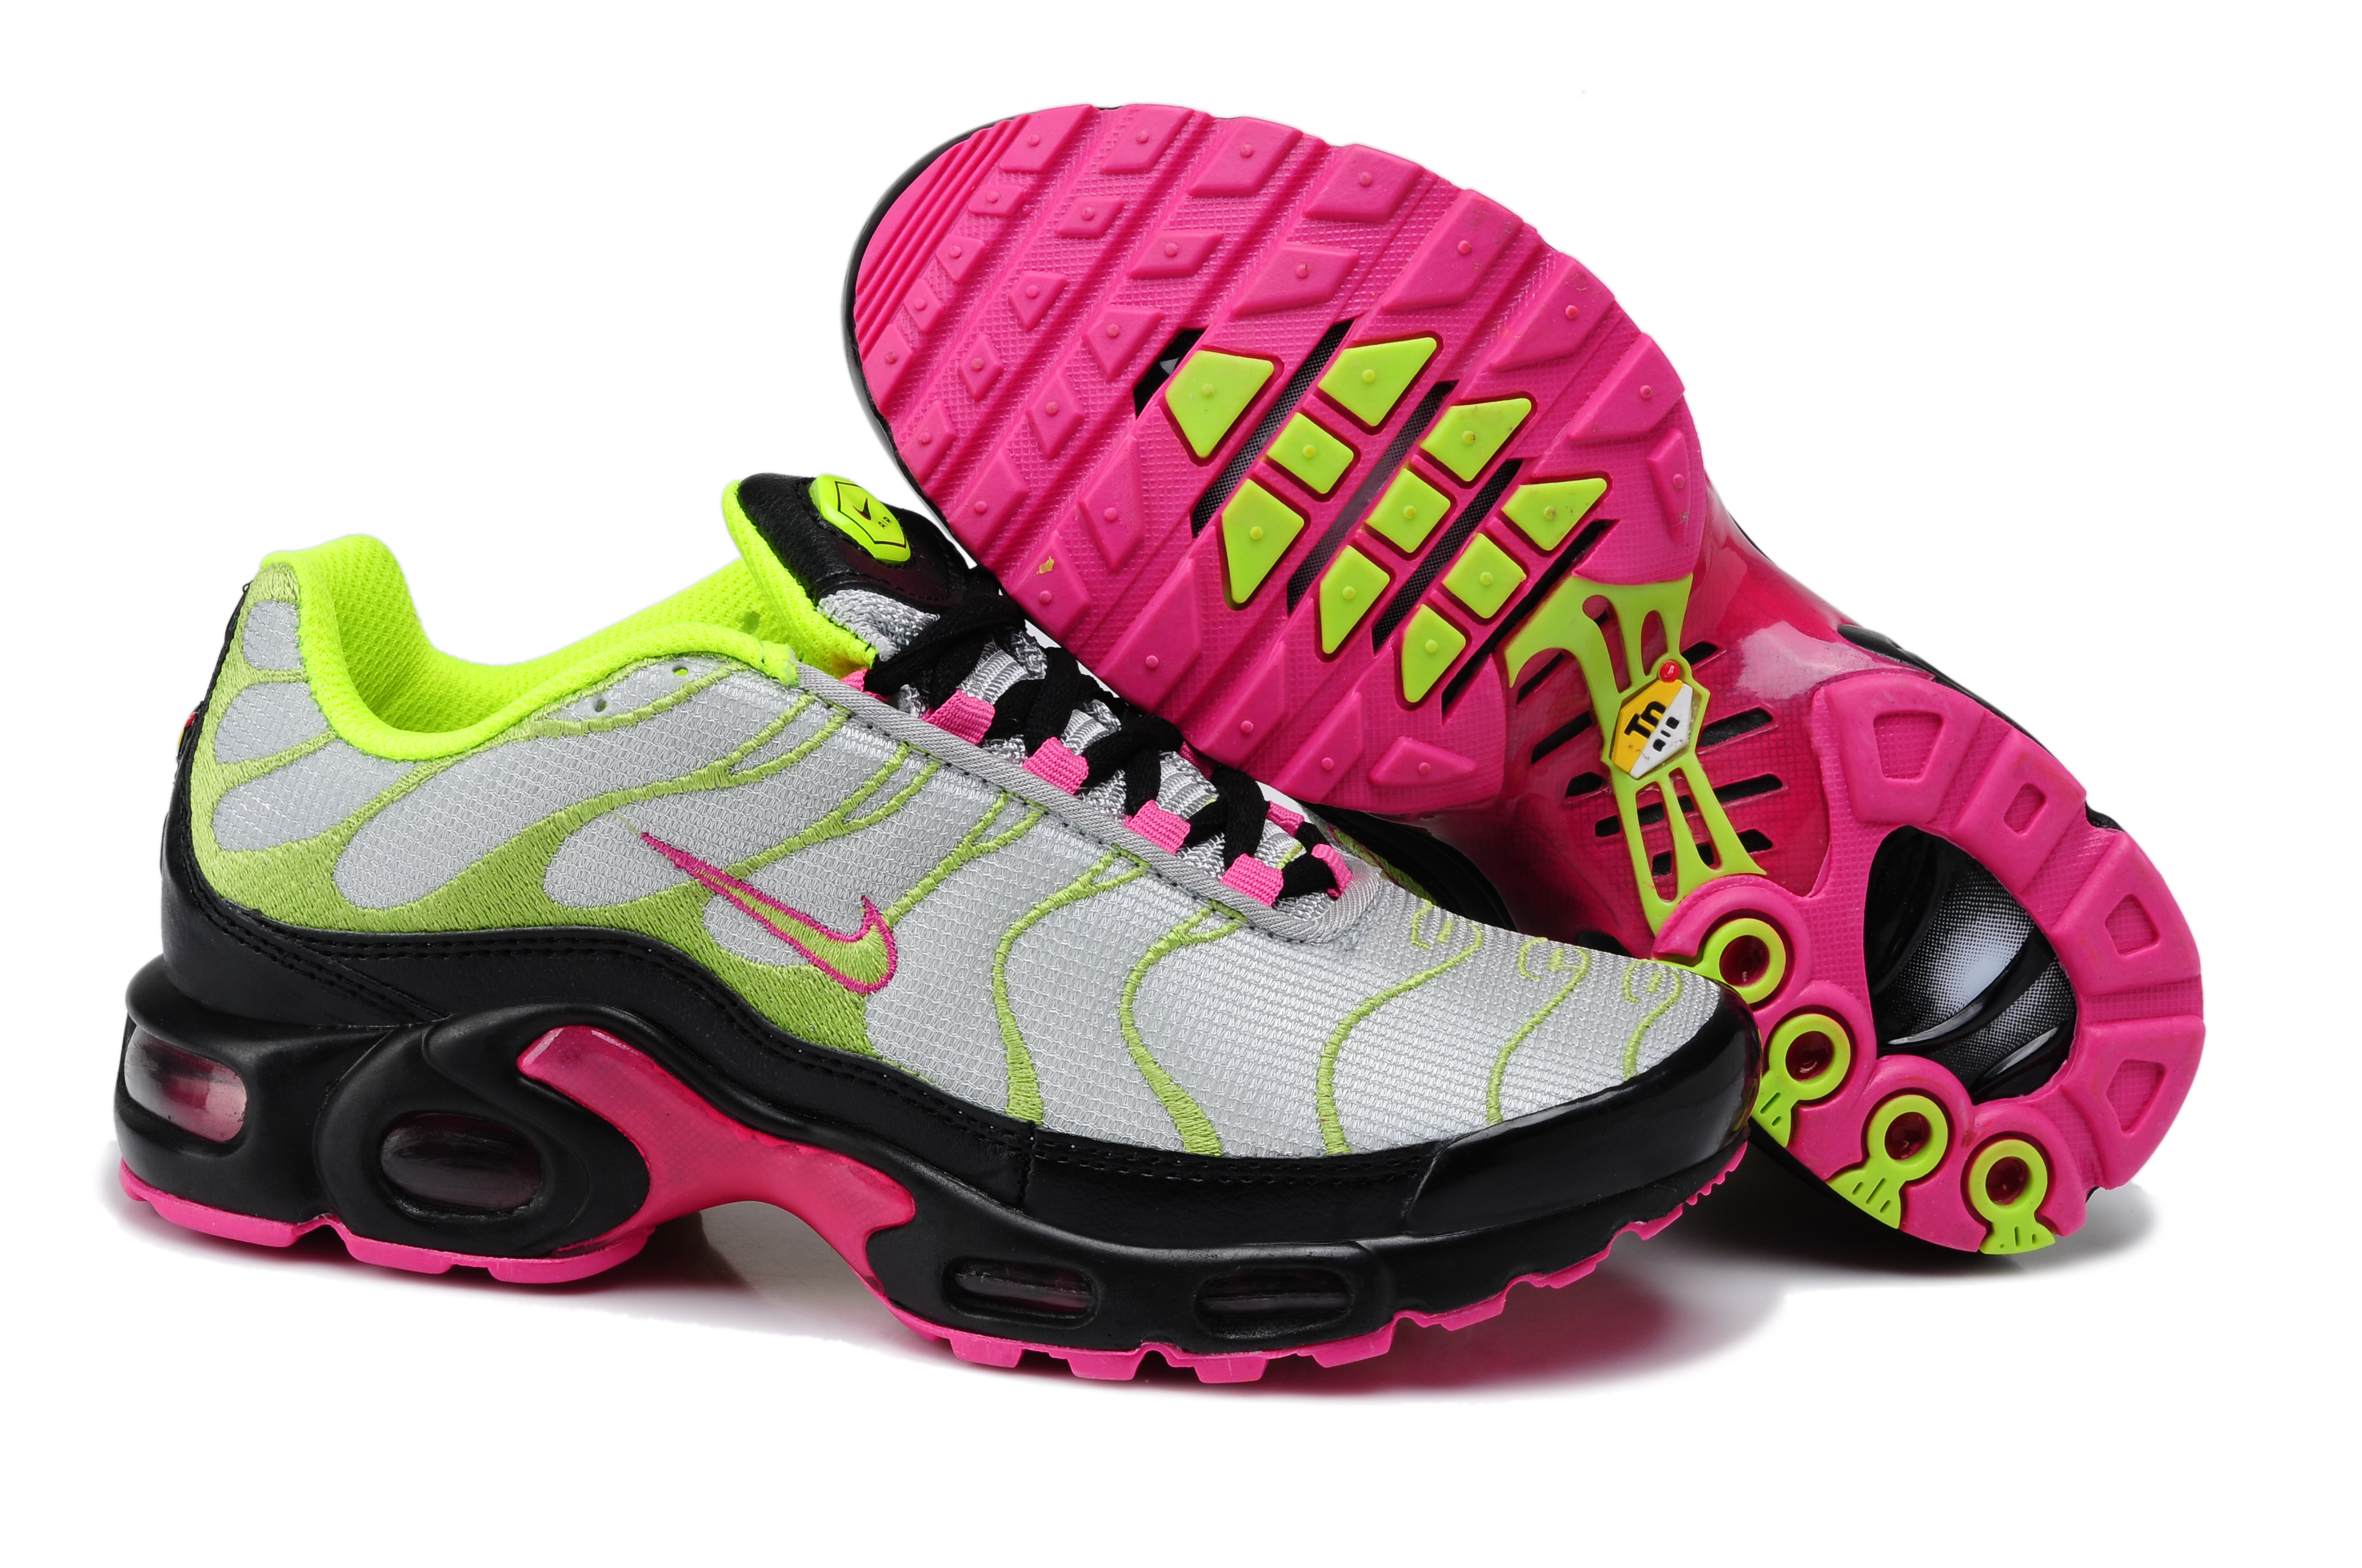 Nike TN 2016 Femme Homme Nouveaux Femme nike air max tailwind 2010 achat nike air max paypal